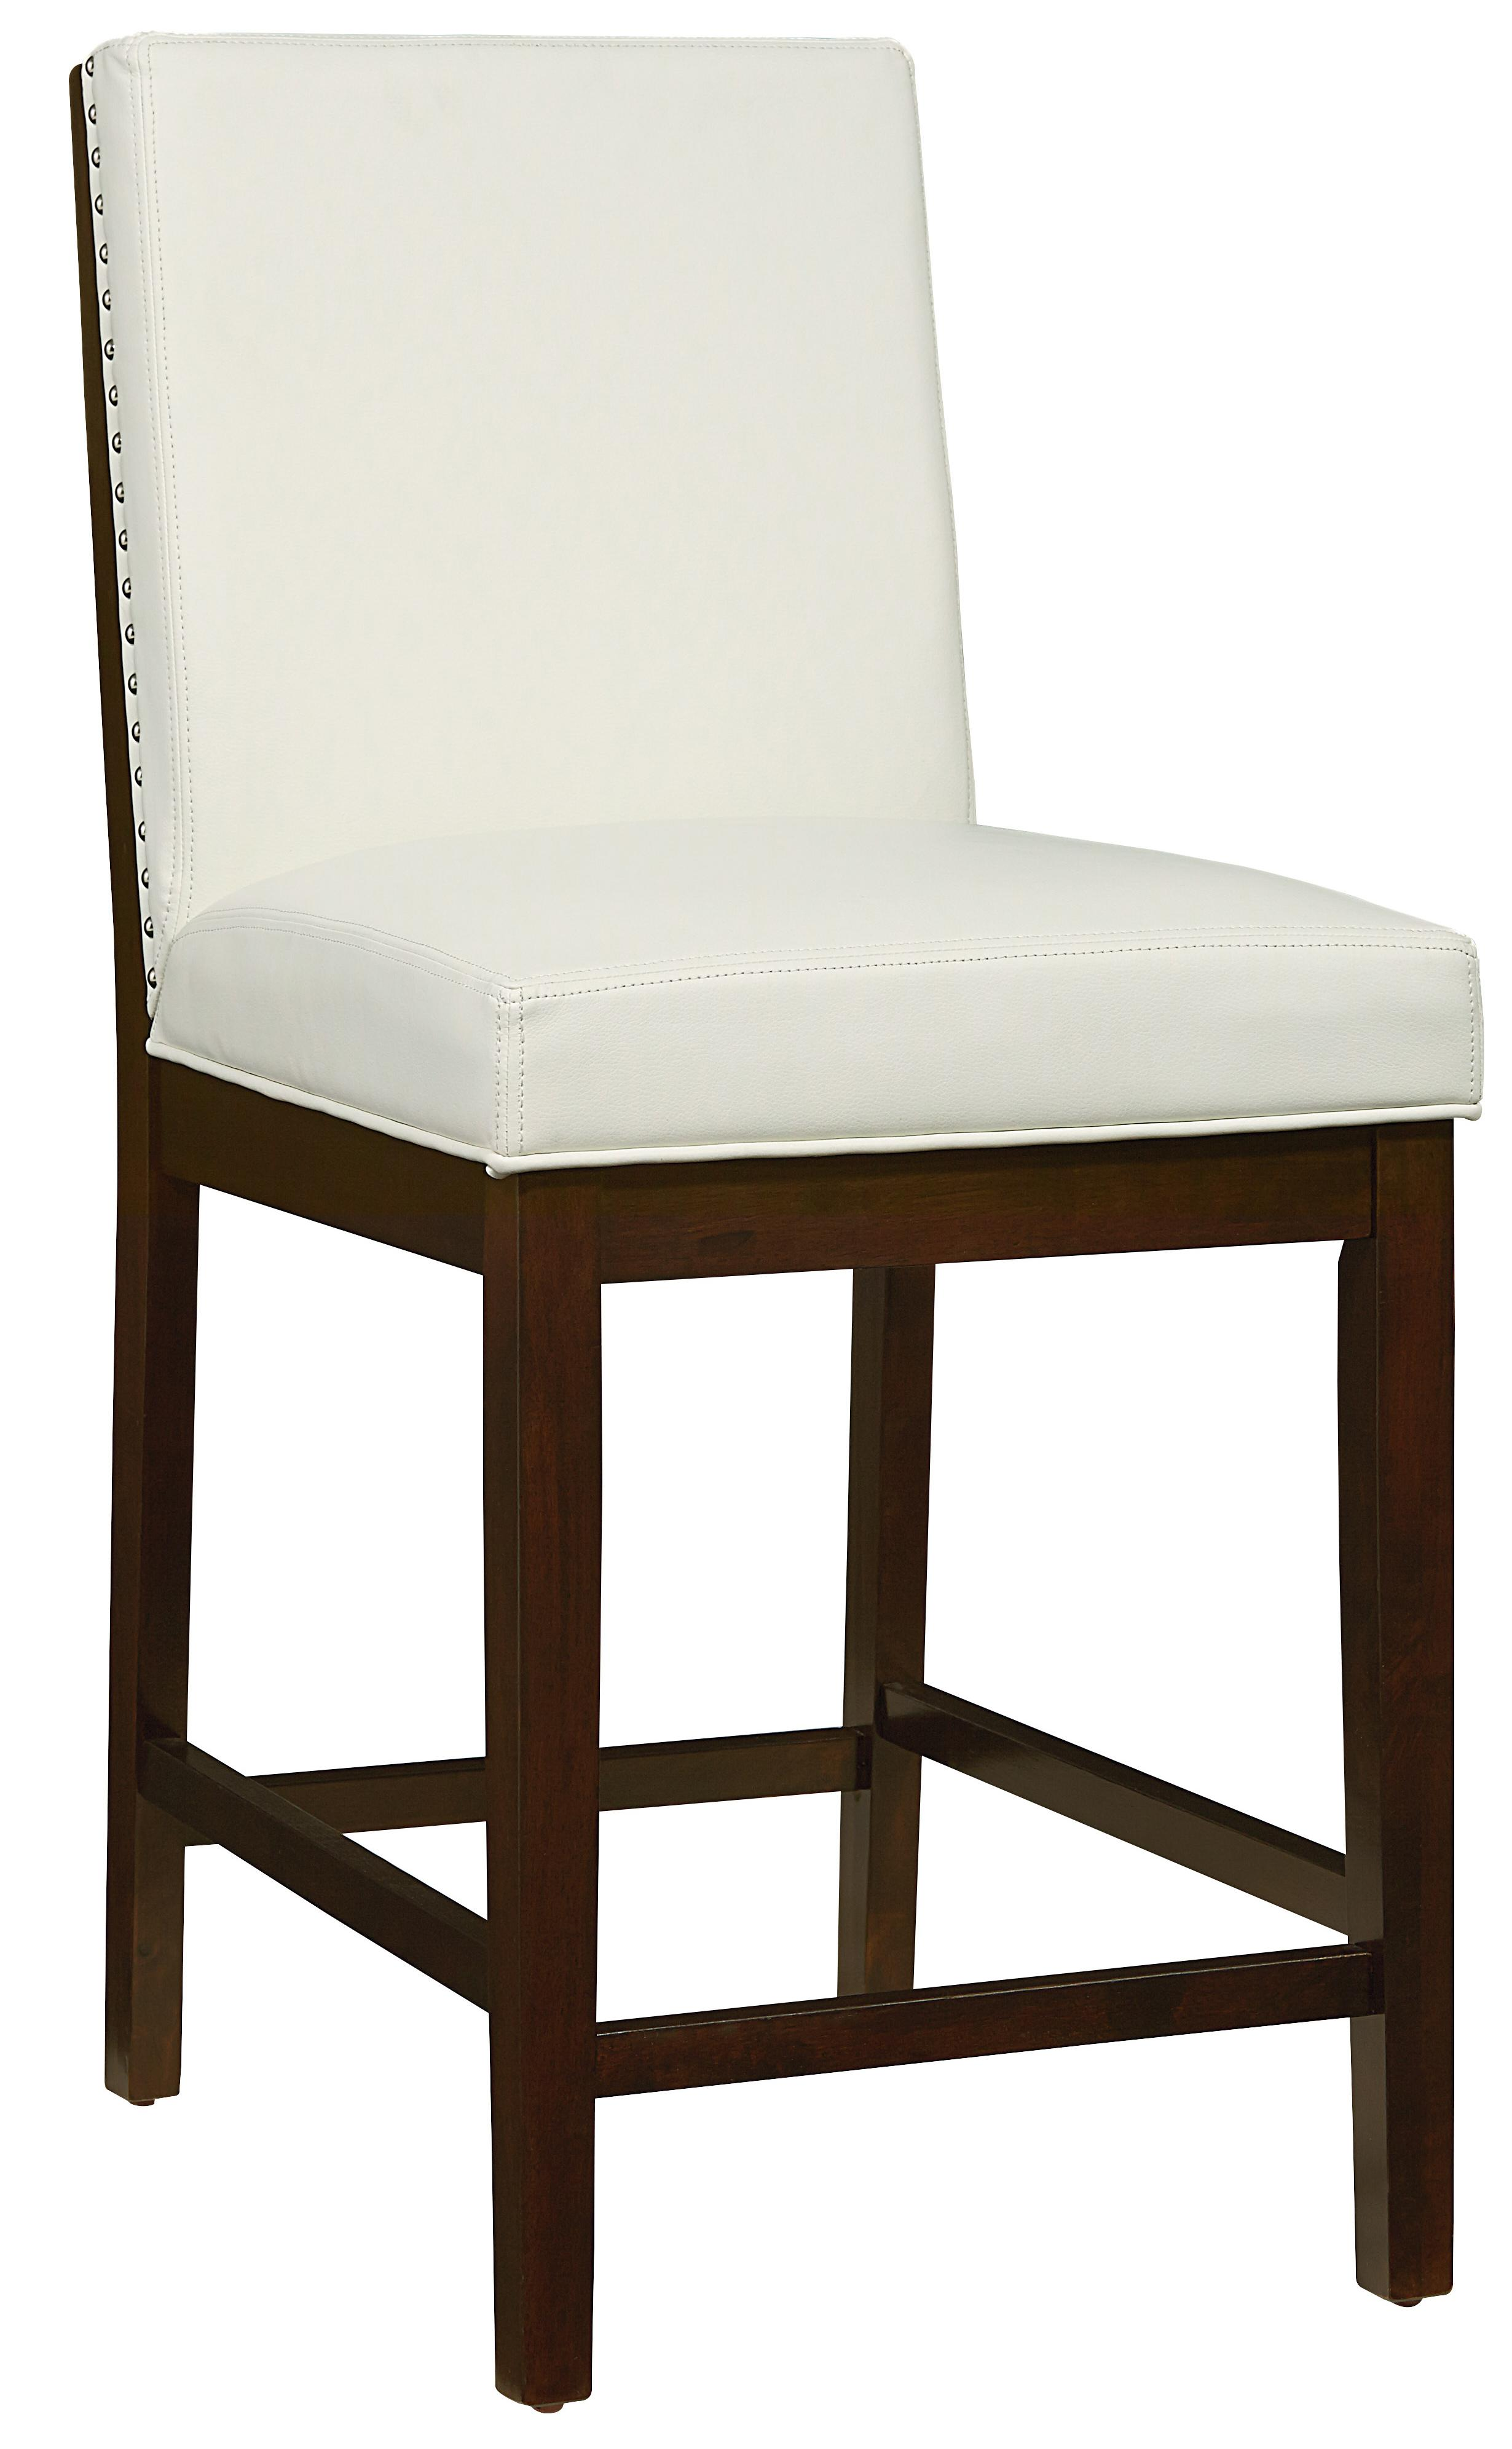 Standard Furniture Couture Elegance Counter Height Chair - Item Number: 10574